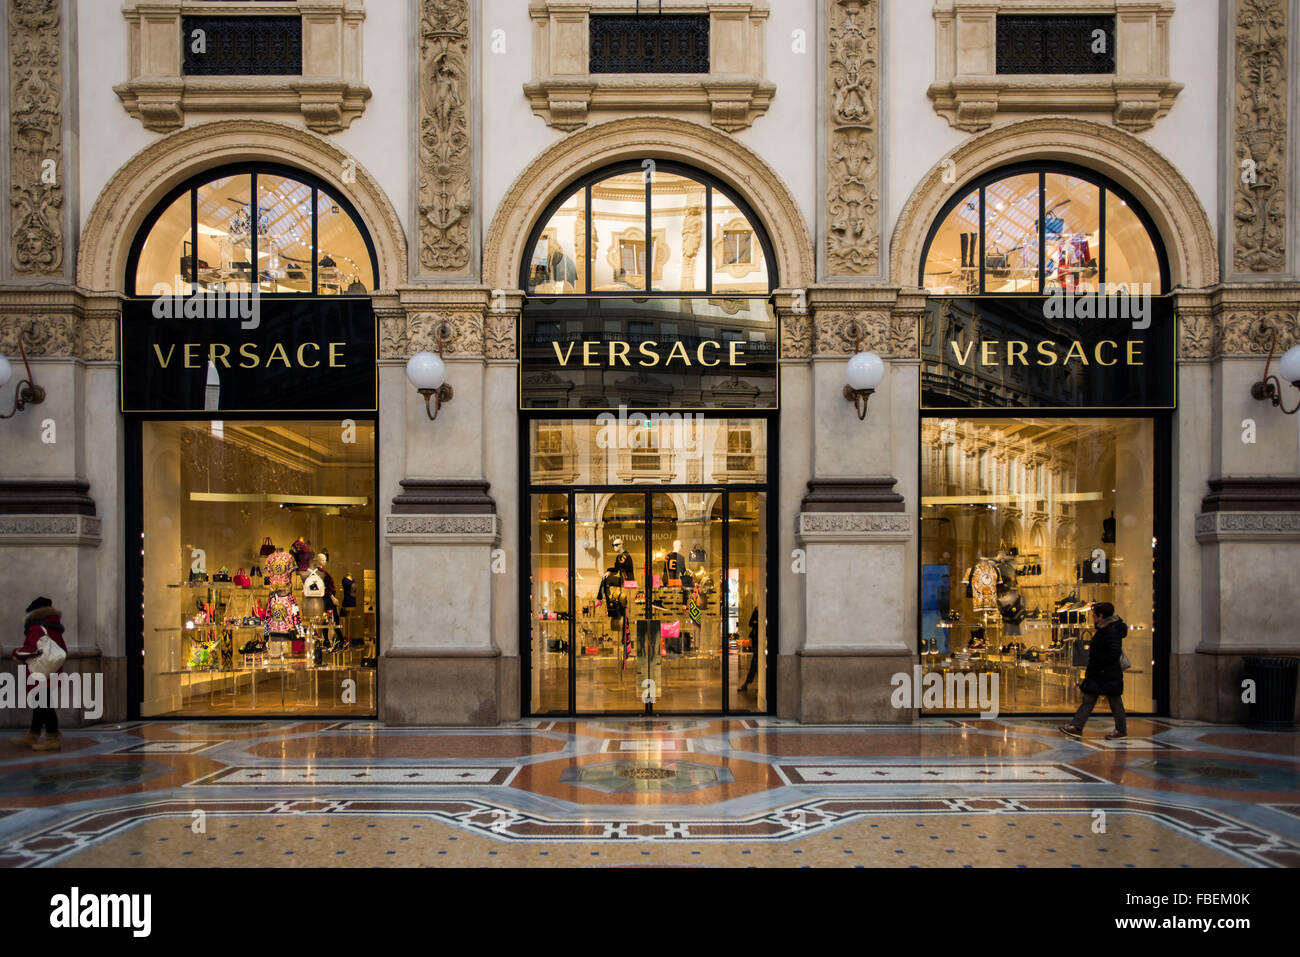 abb1638c5e Versace boutique in Milan on January 15